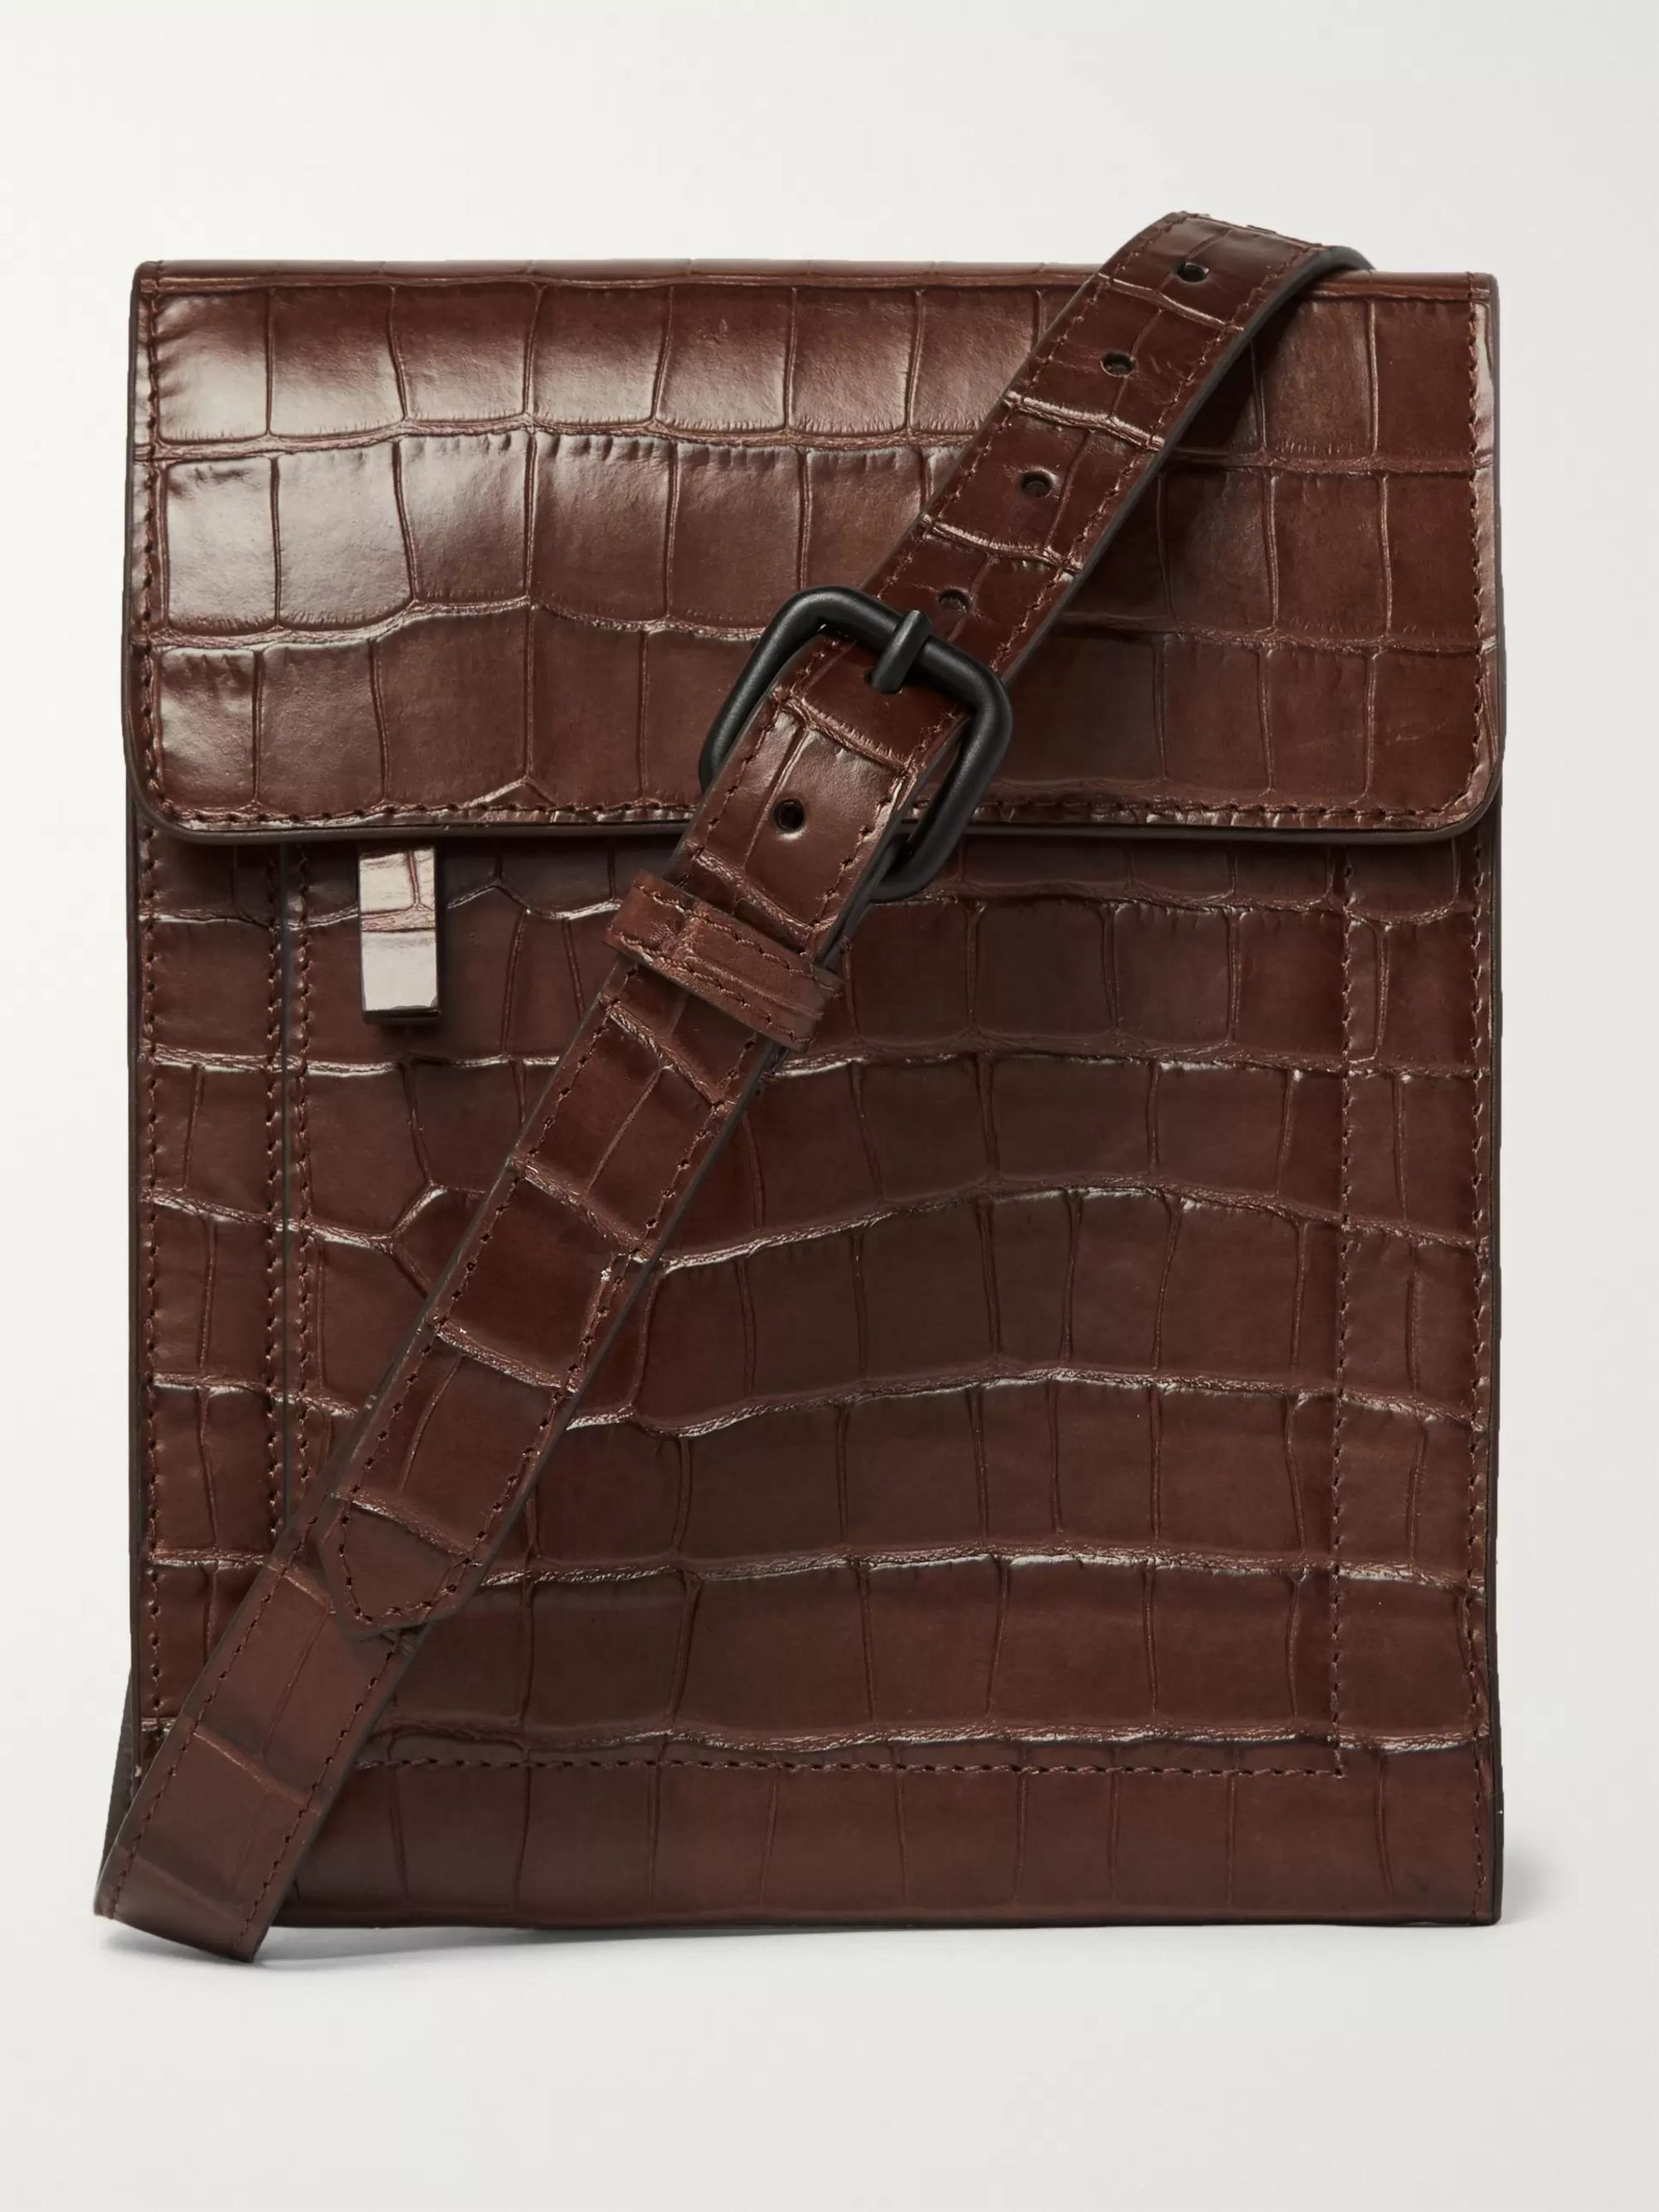 Dries Van Noten Croc-Effect Leather Messenger Bag